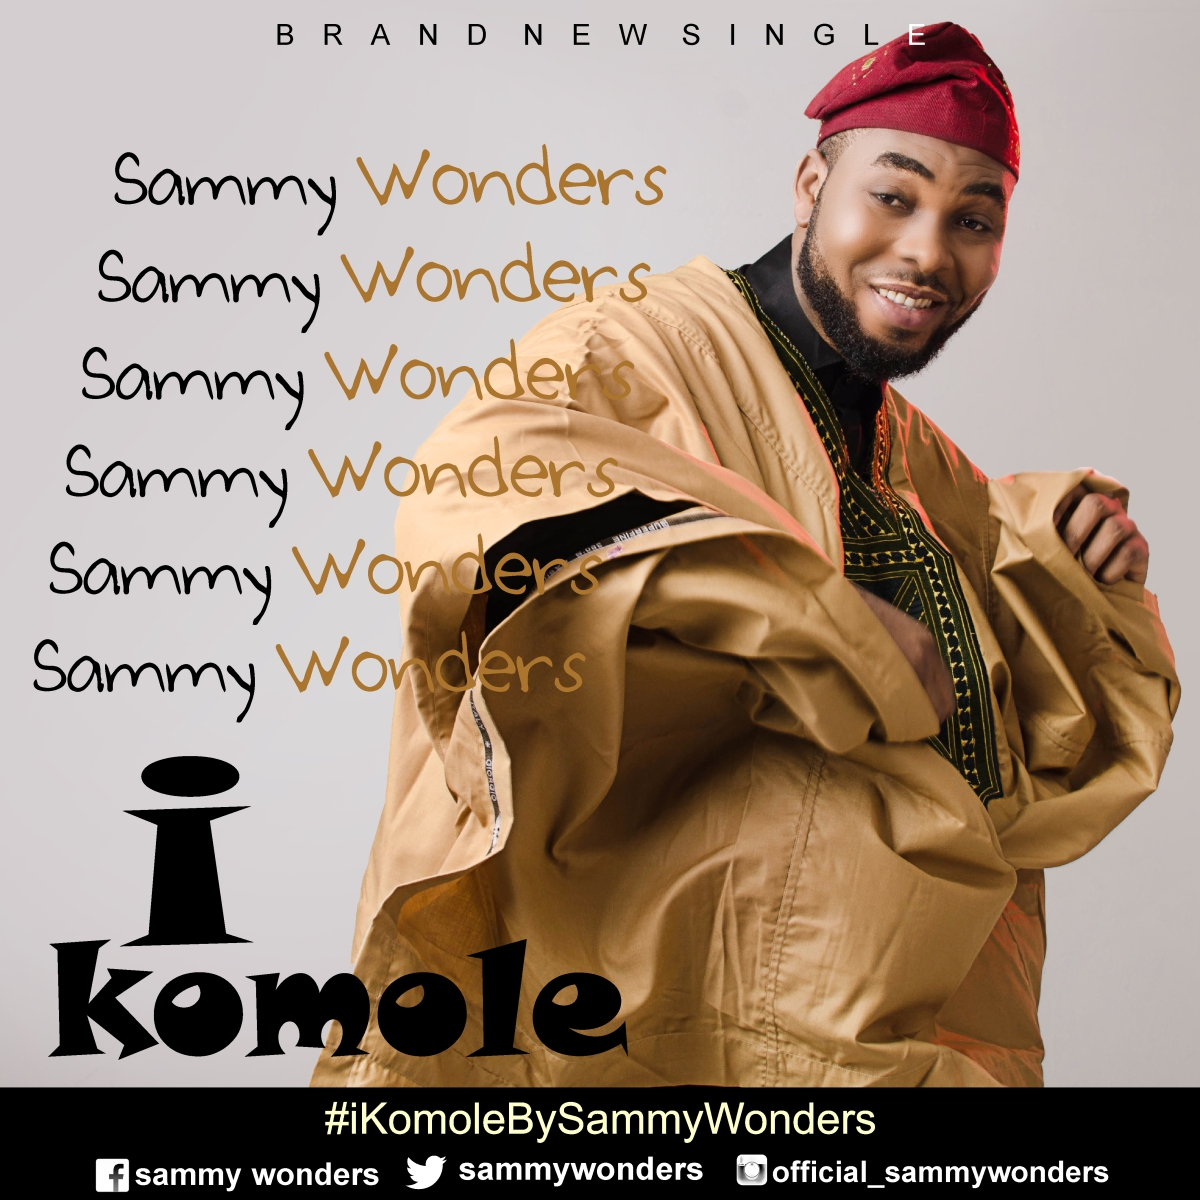 Gospel: Sammy Wonders – I komole (Prod. By DSmart)